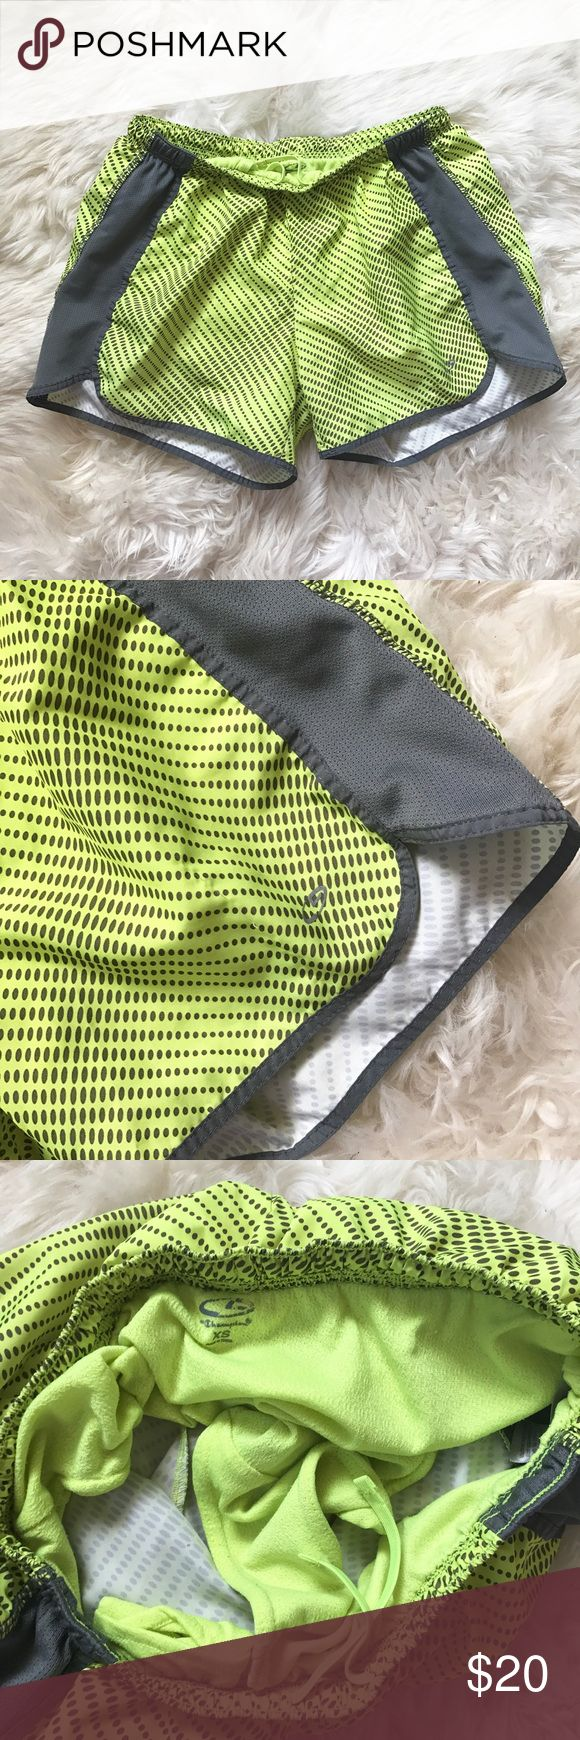 """Champion Neon Green & Gray Polka Dot Running Short Inexcellentcondition. Lightweight woven 100% polyester. Has inner brief liner to provide secure coverage andhidden key pocket. Mesh gray side panels. Smooth flat waistband with low profile inner drawcord. Measures 13""""acrosswaist, stretchy, & 10 1/2"""" in length. """"C"""" logo at left hem. ❌NO TRADES OR PAYPAL❌ Champion Shorts"""